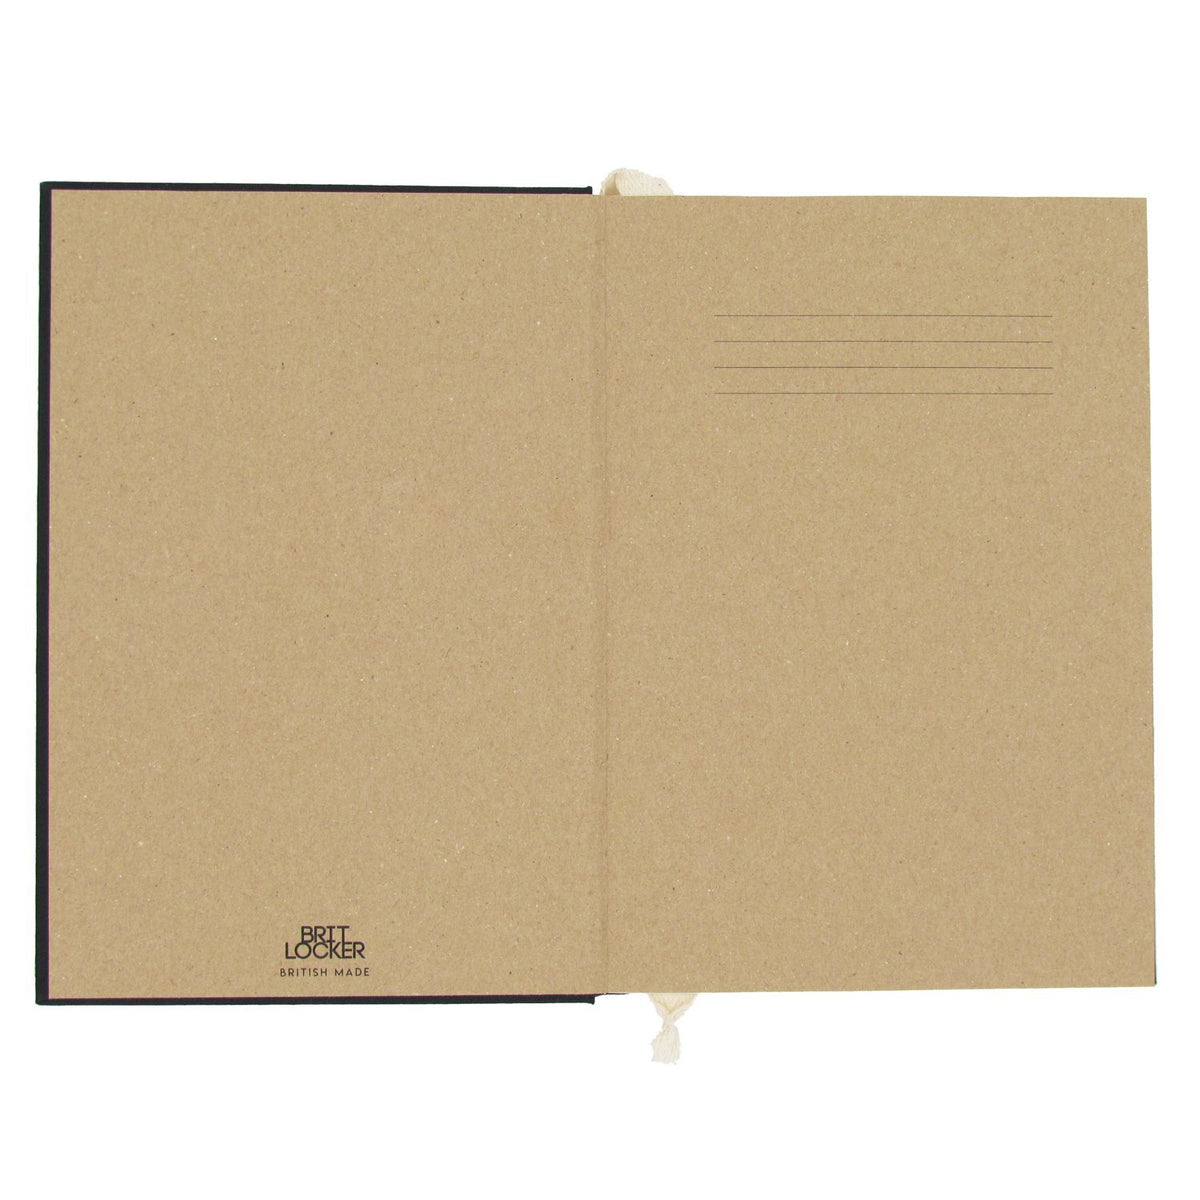 Harmony Eco-Friendly Notebook Open - Black - Made in Britain - BRIT LOCKER